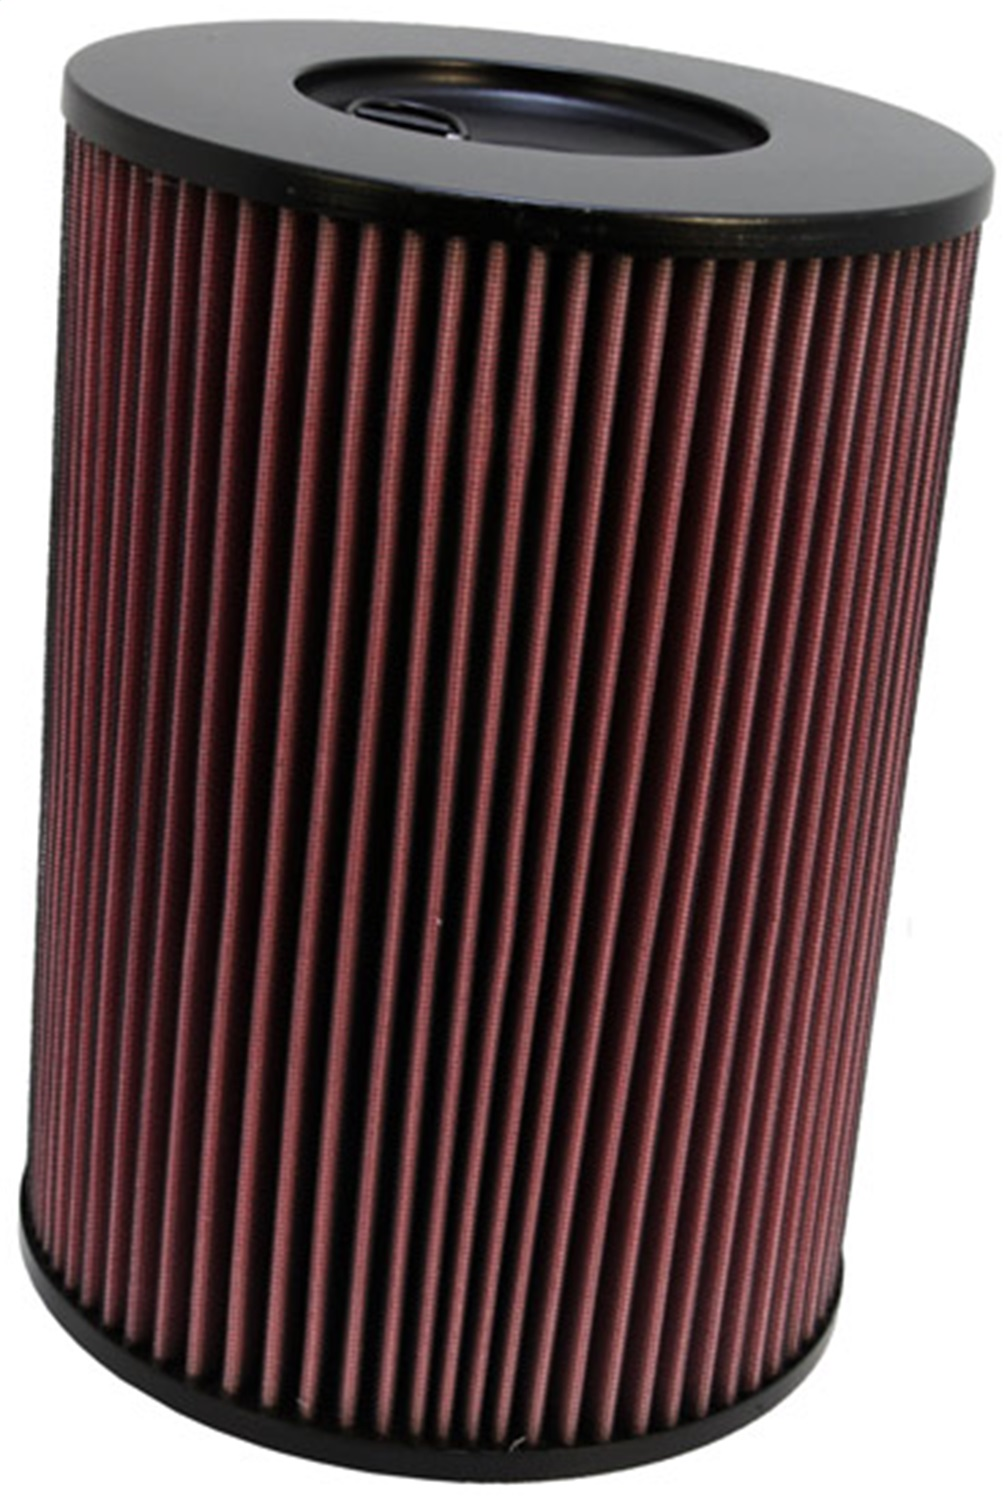 K & N E-1700 Replacement Air Filter 226561233